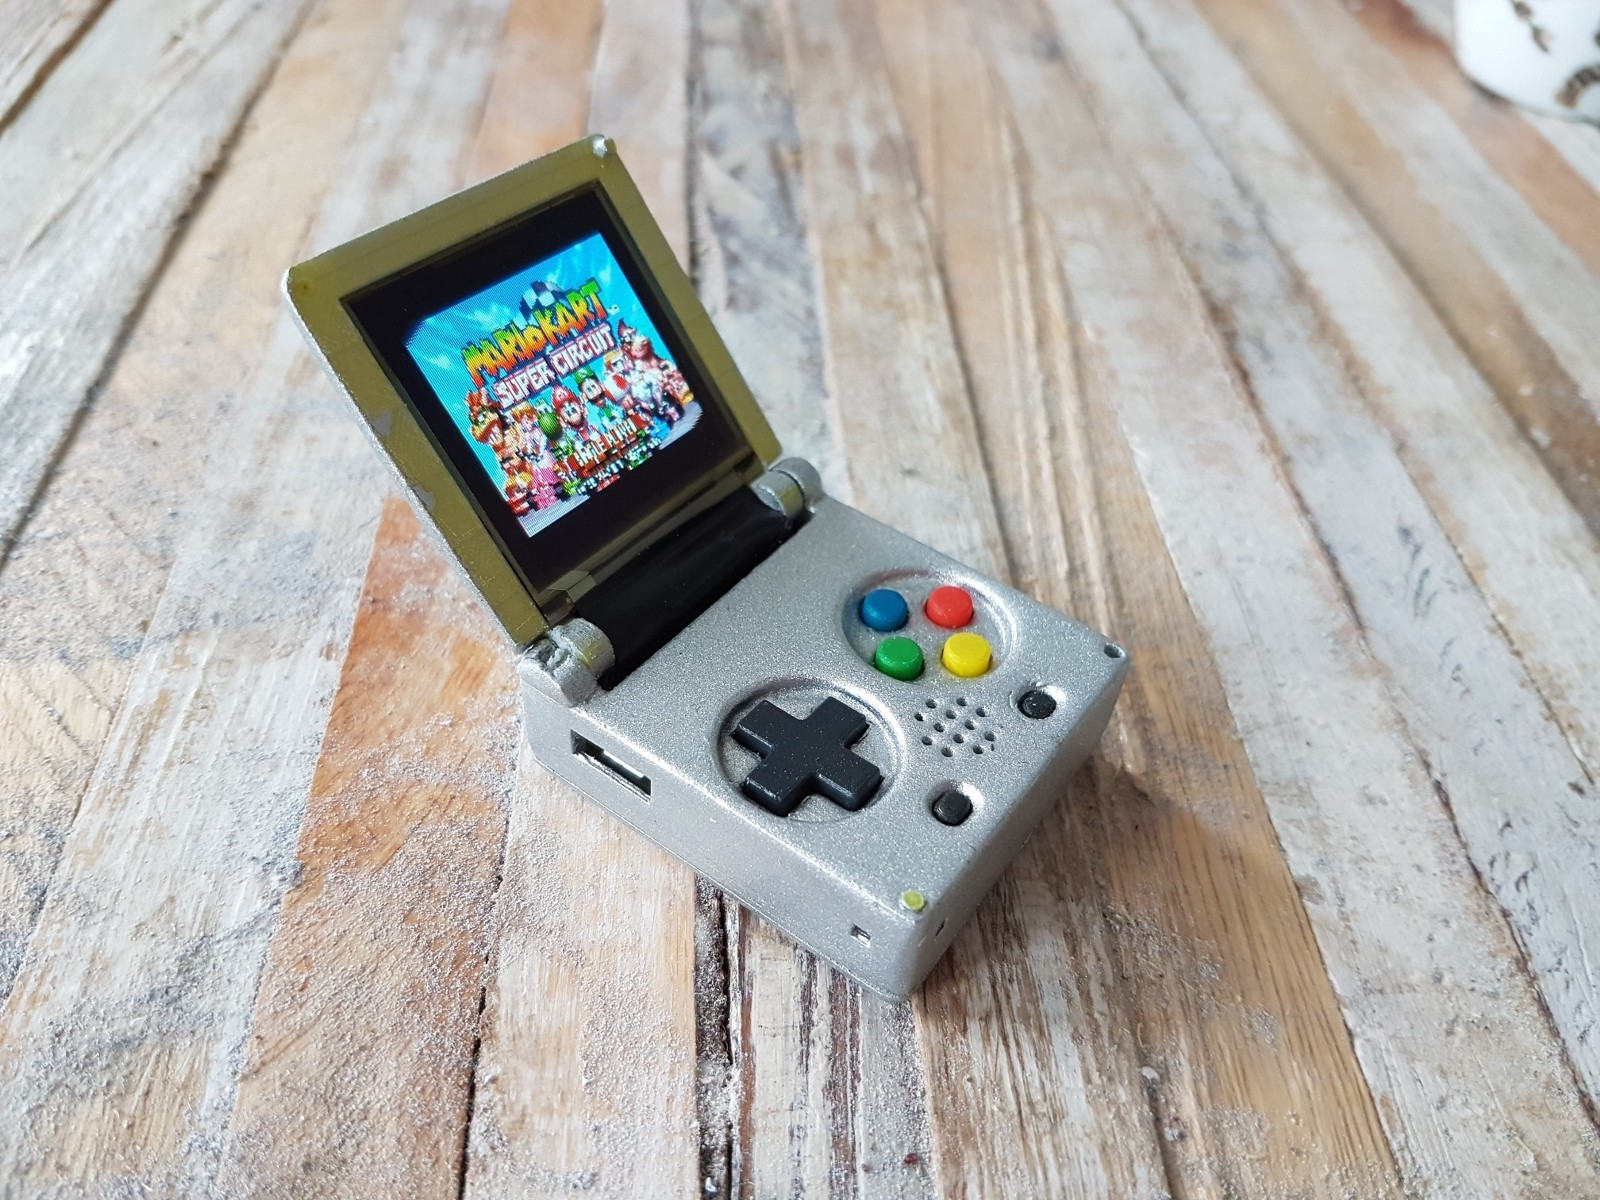 Gameboy color emulators - Buso After Seeing Another Tiny Game Boy Device Decided To Make His Own With Several Improvements First Instead Of Using A Raspberry Pi